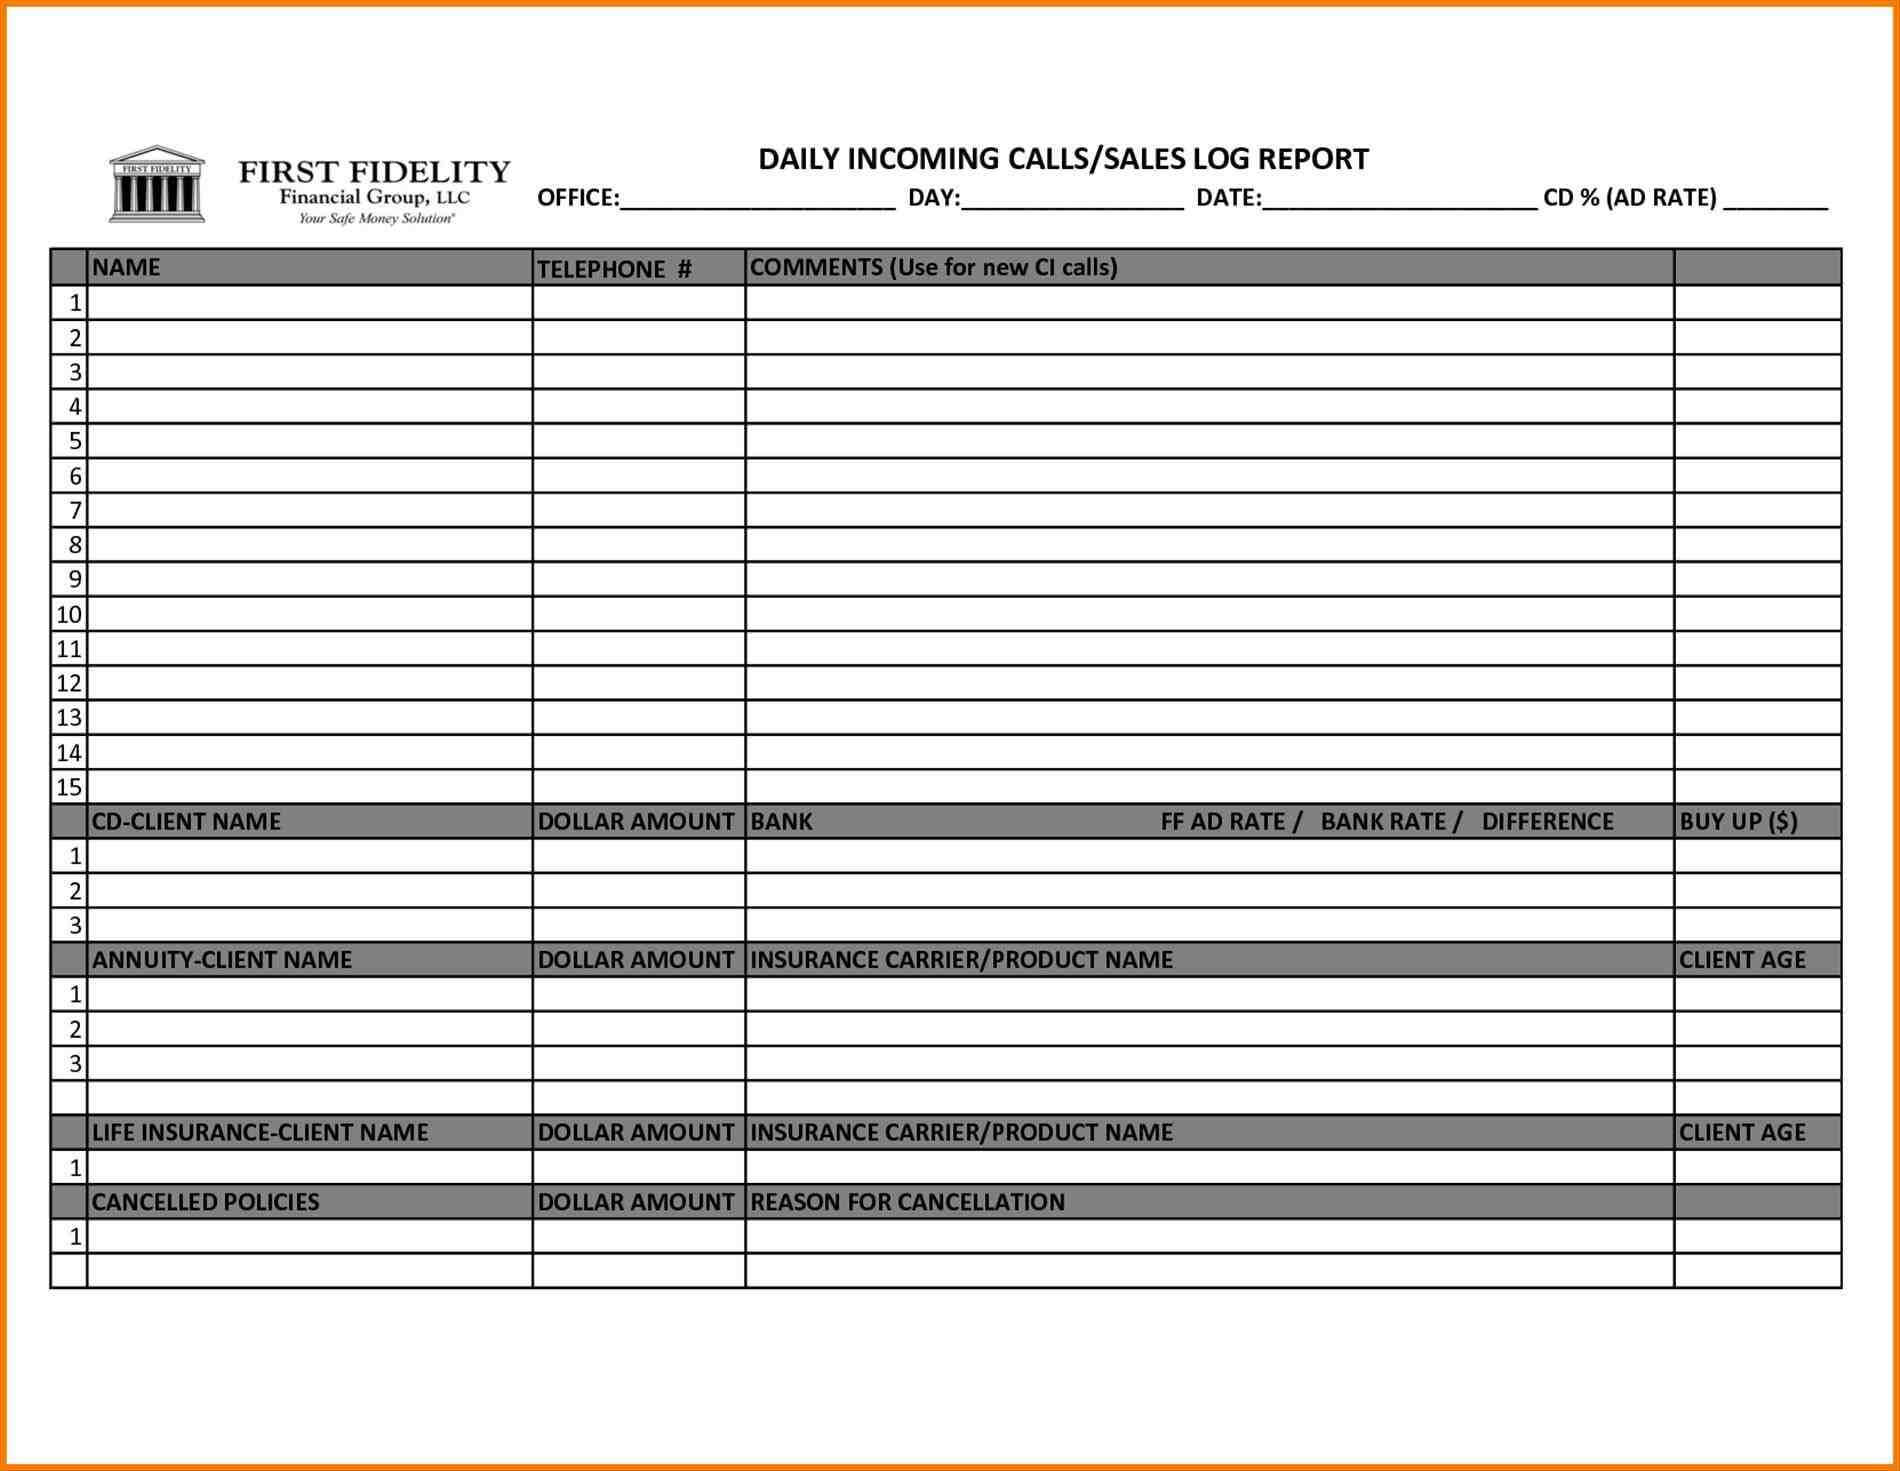 Sales Call Report Template Excel - Sample Templates - Sample Pertaining To Sales Call Report Template